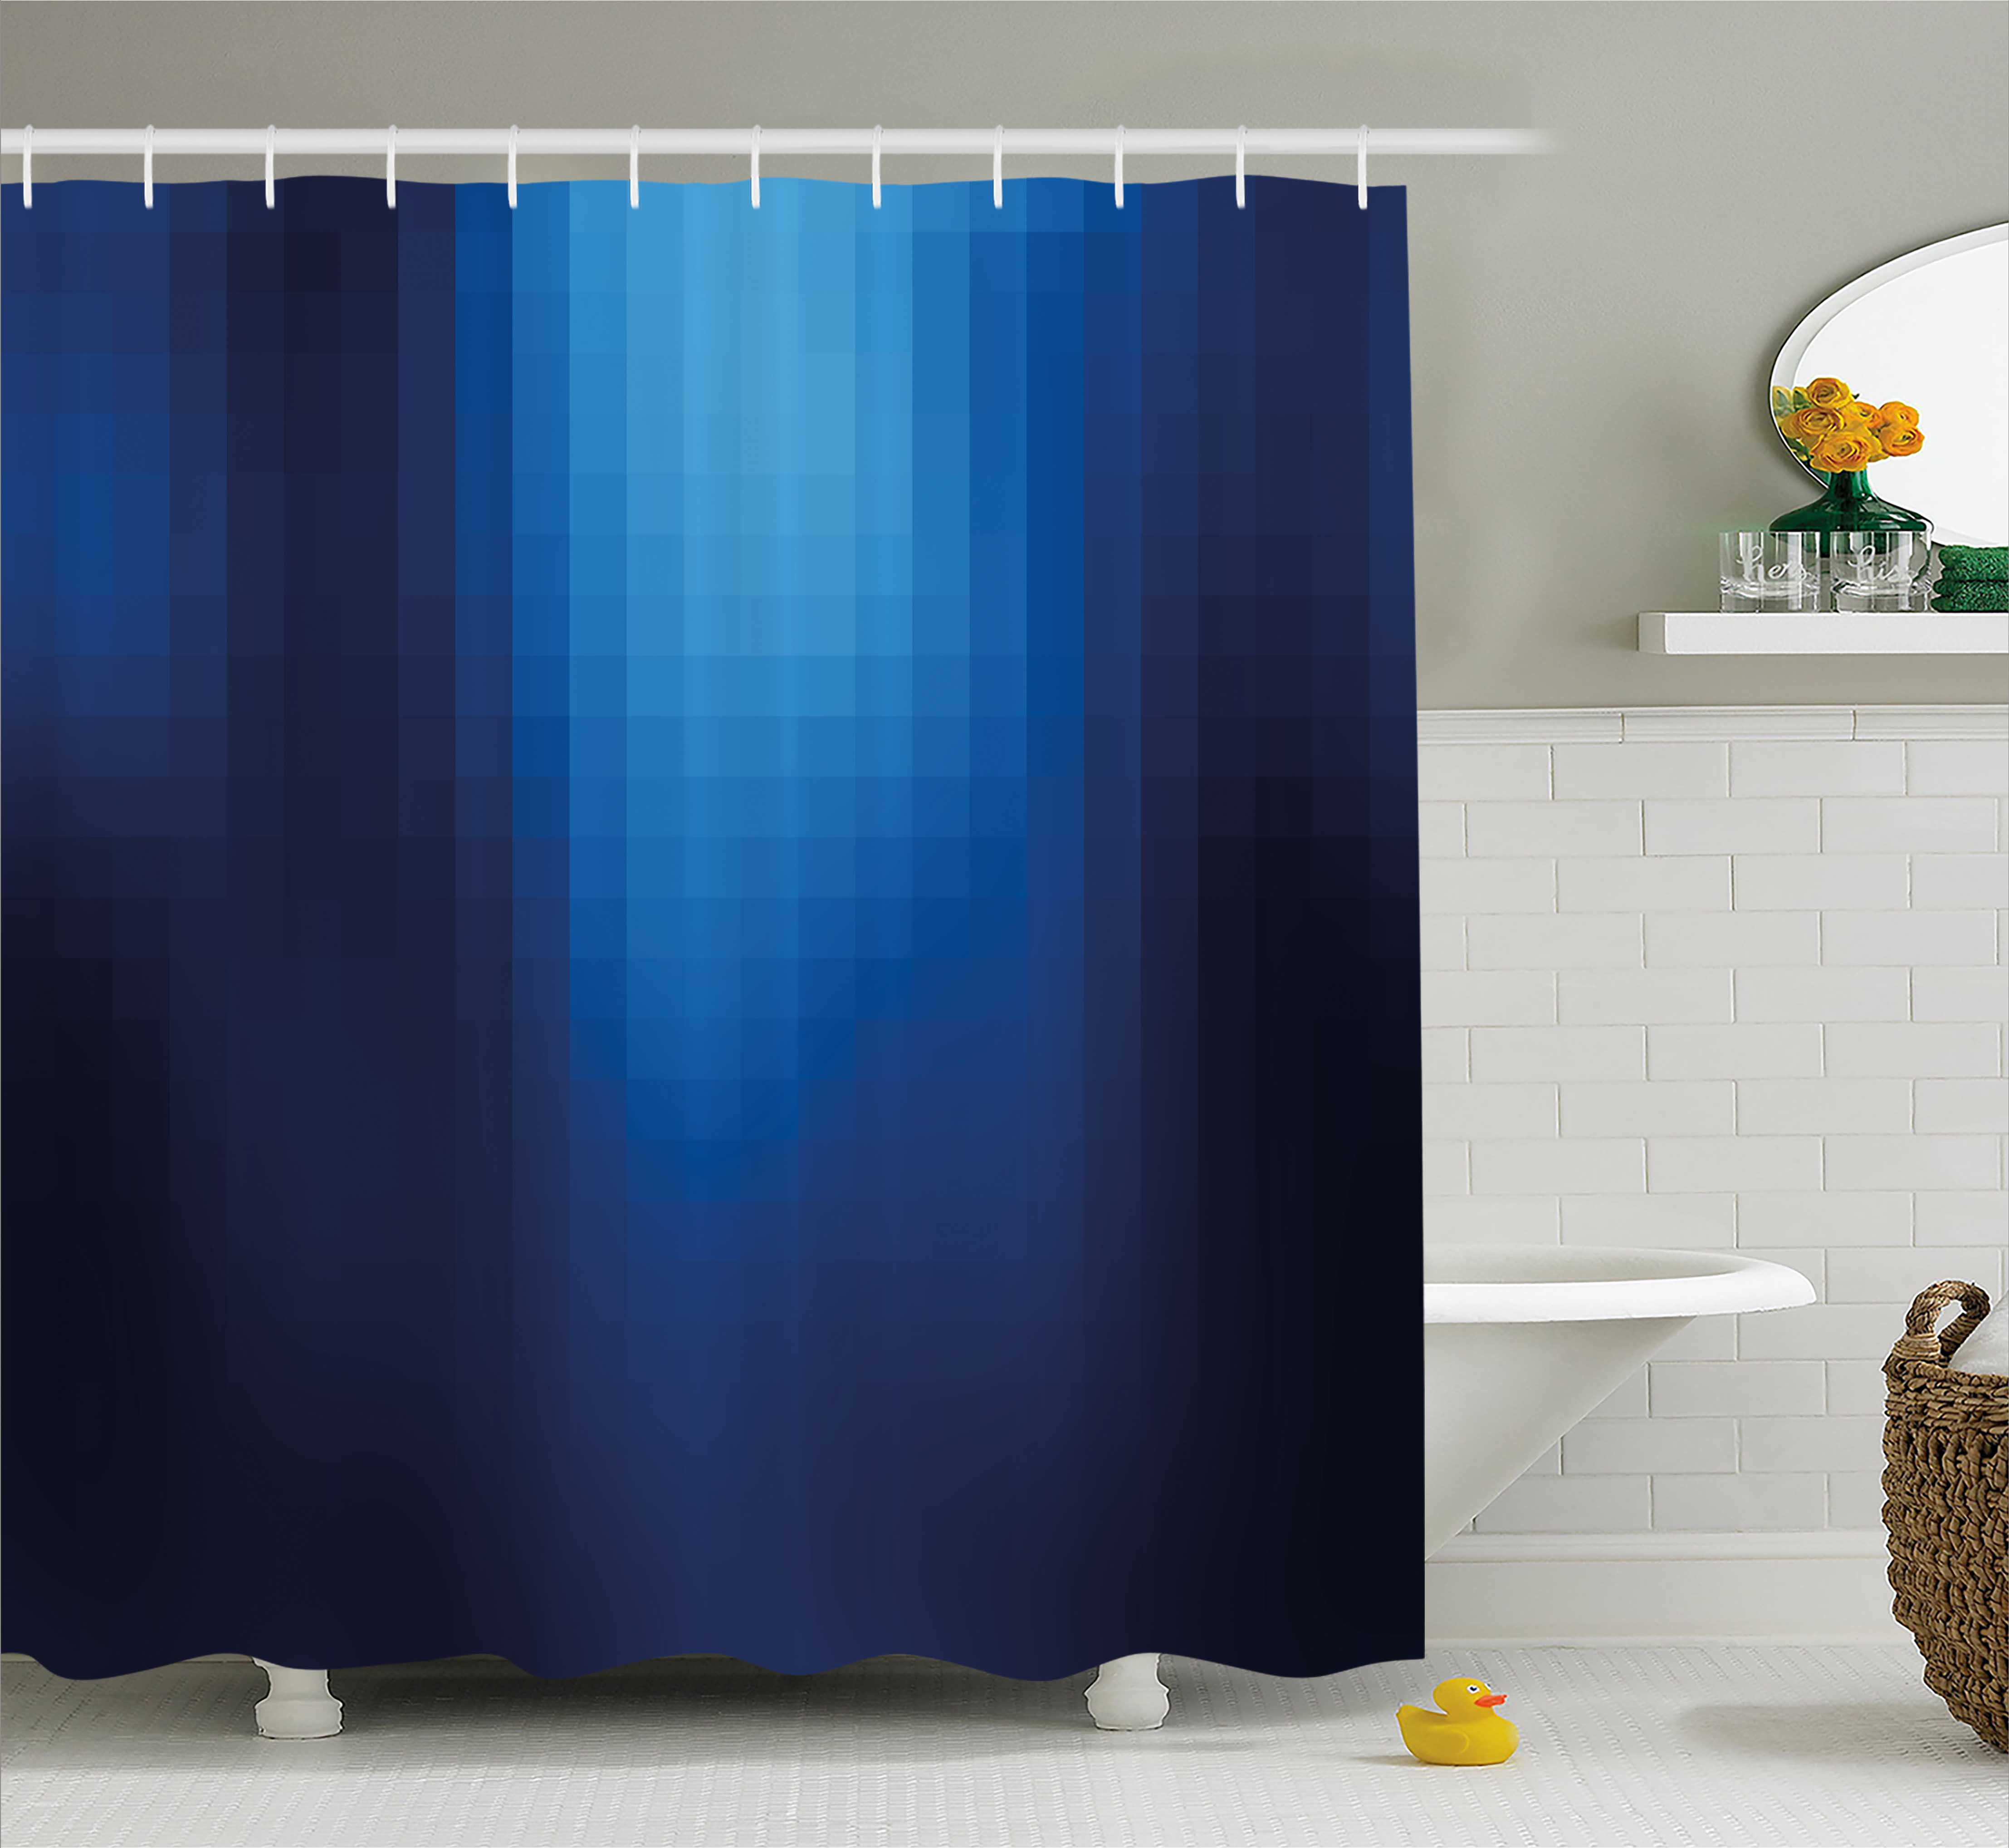 Navy Shower Curtain, Blurry Mosaic Like Pixel Squares in Blue Ombre Colors Image, Fabric Bathroom Set with Hooks, 69W X 70L Inches, Navy Blue Light Blue and Turquoise, by Ambesonne